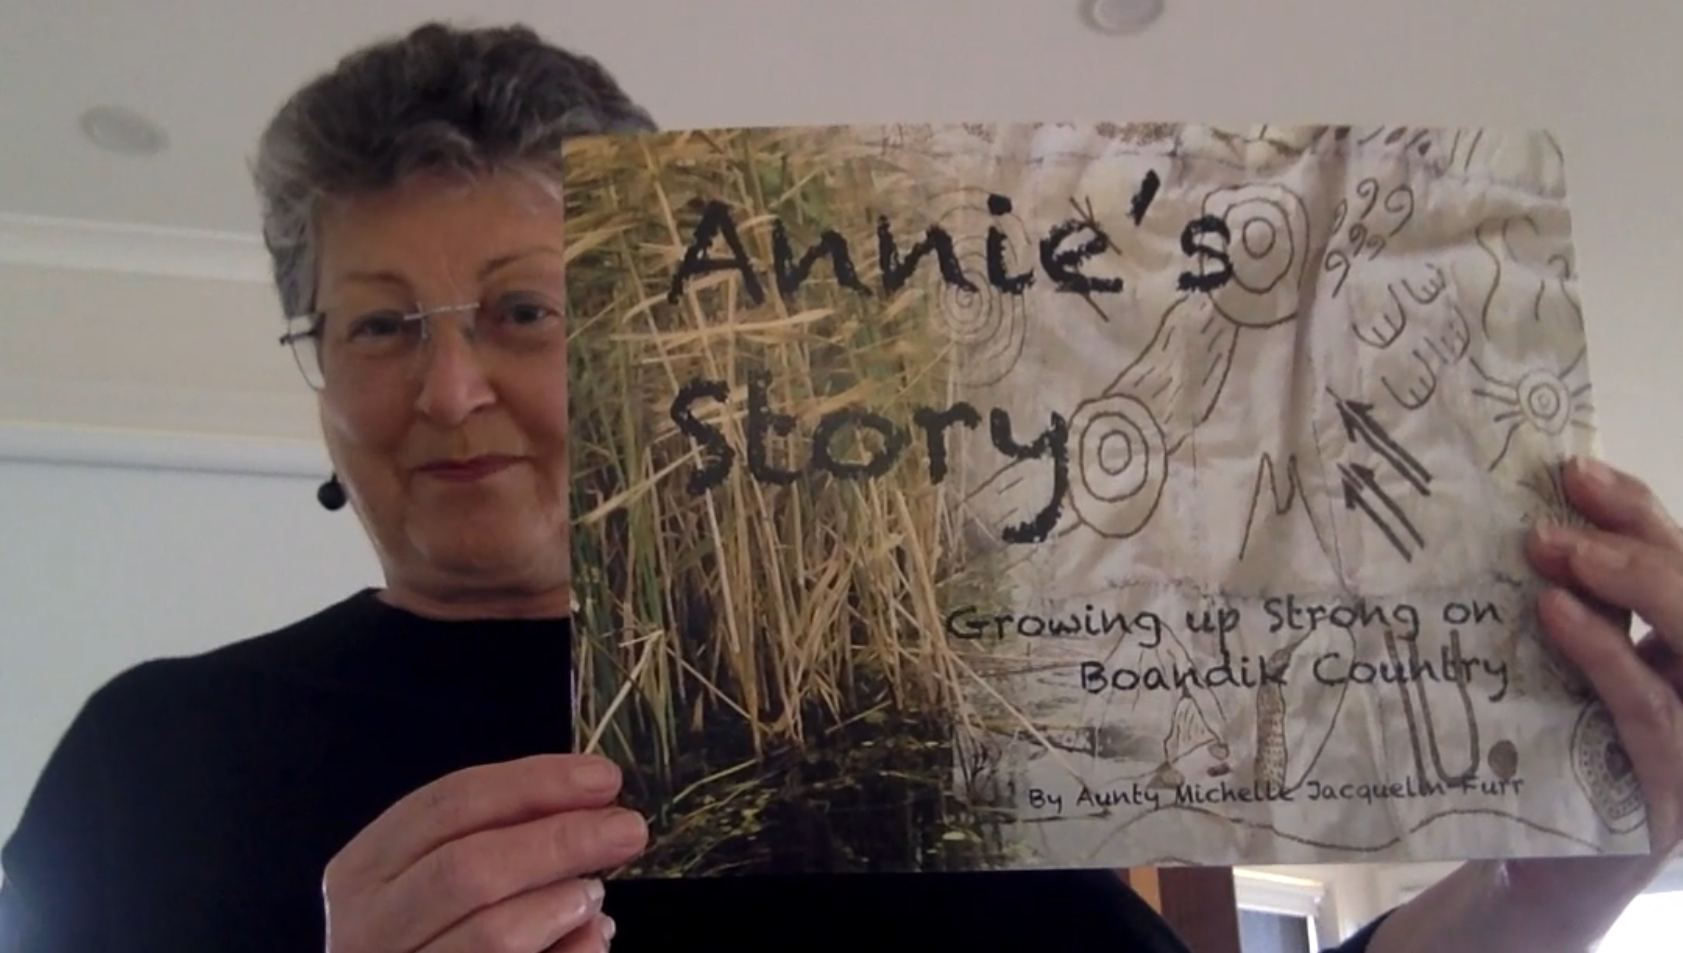 Annie's Story - Growing up Strong on Boandik Country